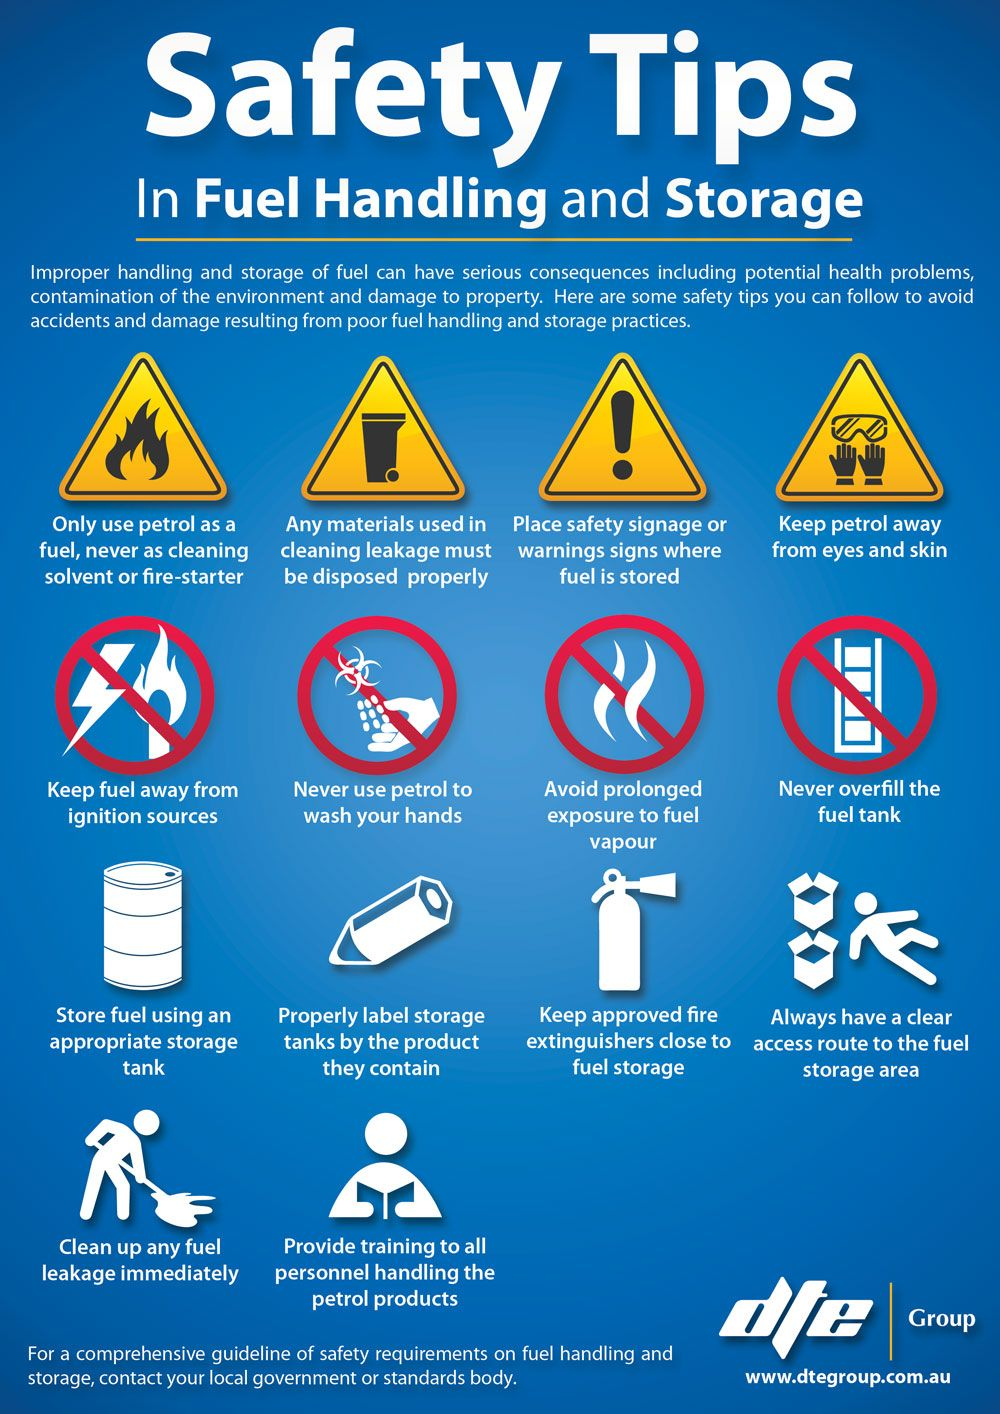 Some practical tips on fuel handling and storage! Safety